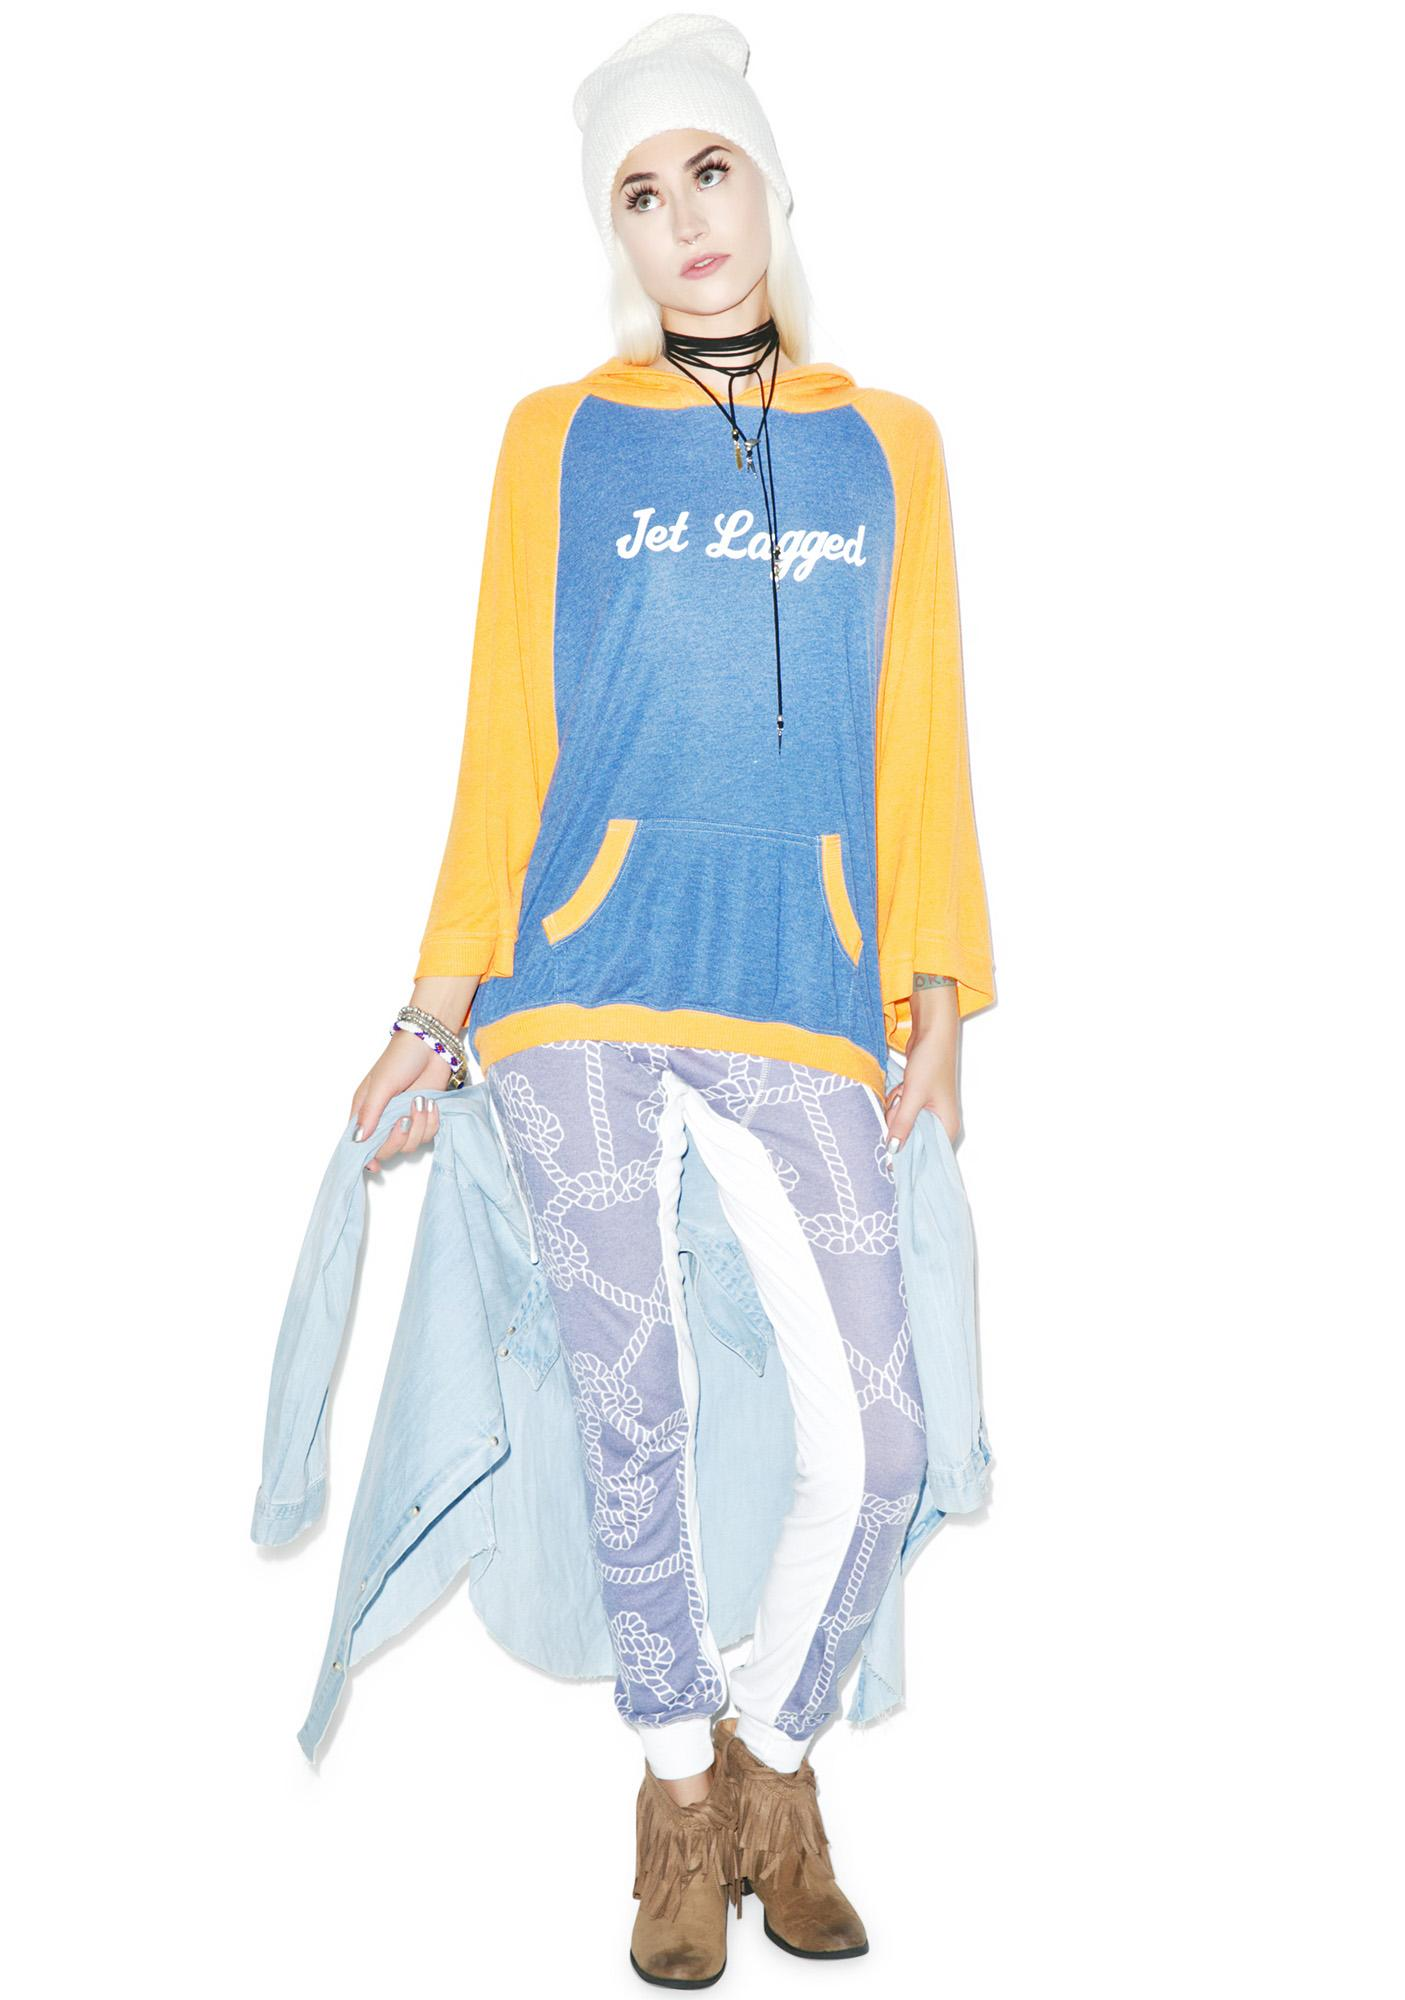 Wildfox Couture Jet Lagged Beach Cover-Up Poncho